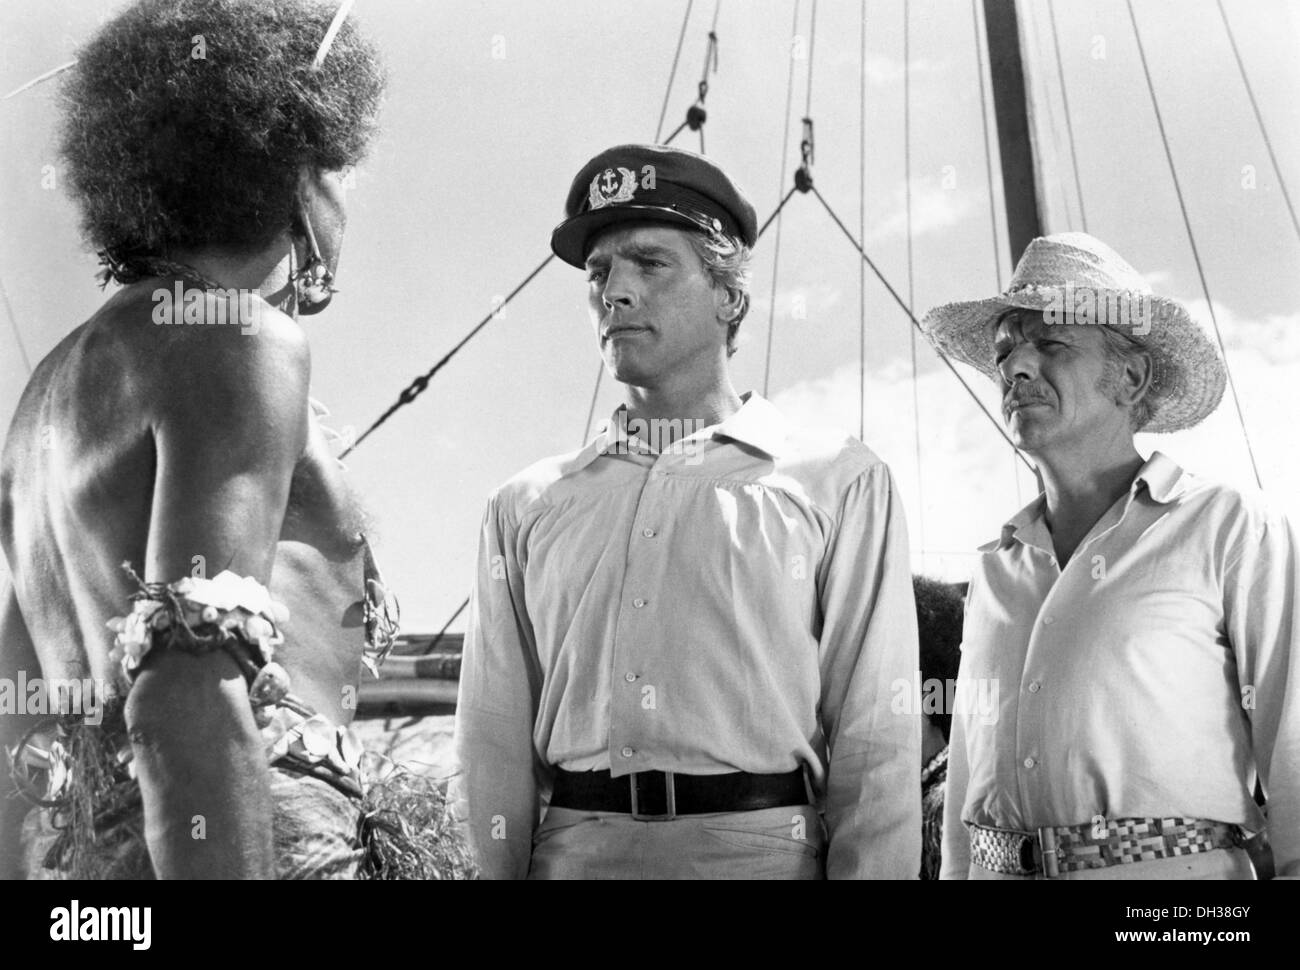 HIS MAJESTY O'KEEFE 1954) BURT LANCASTER, BRYON HASKIN DIR) HMOK 001 MOVIESTORE COLLECTION LTD - Stock Image